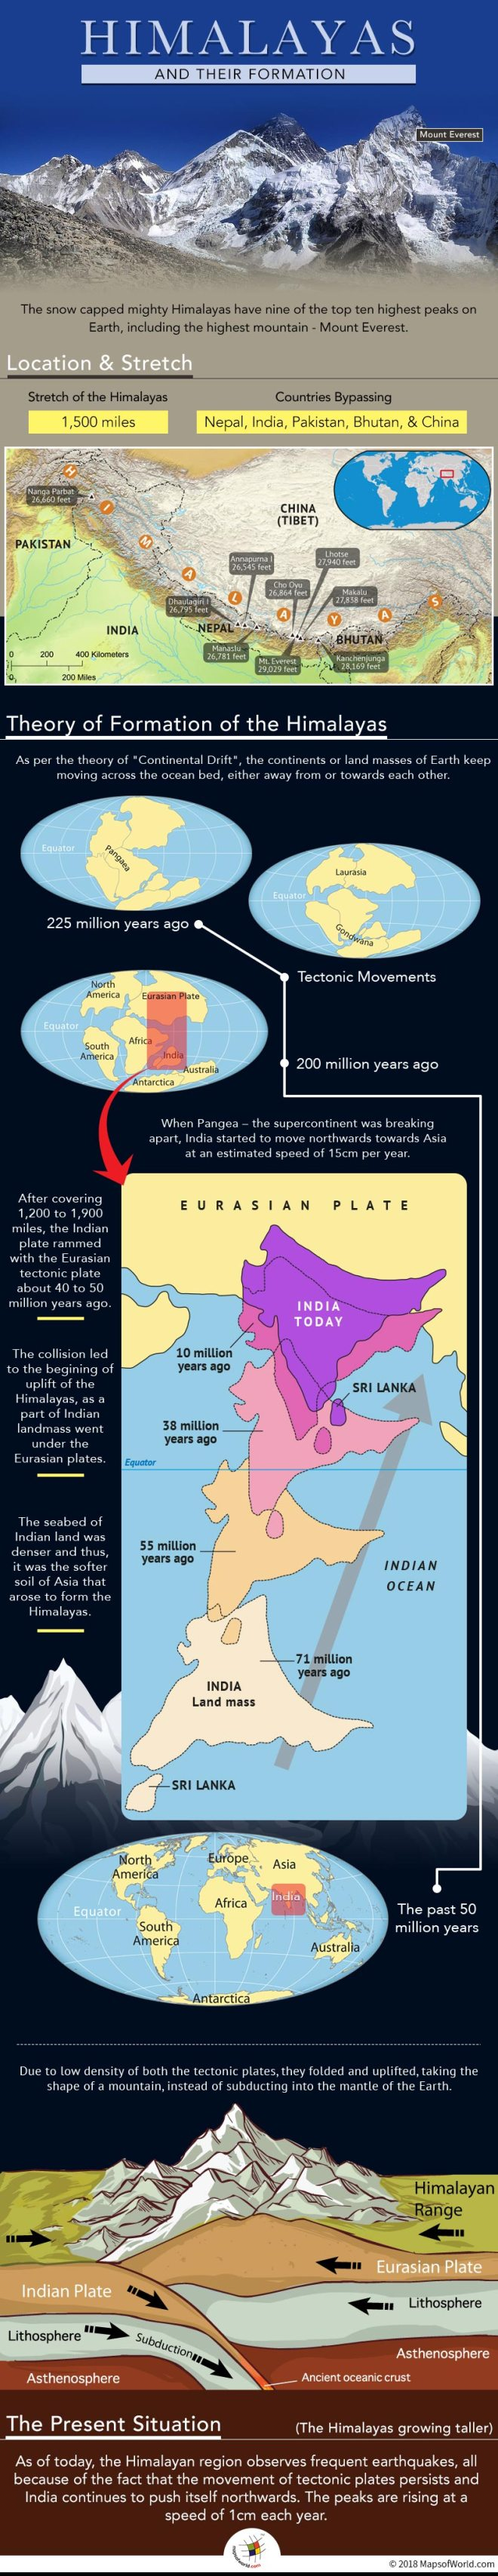 How were the Himalayas formed?